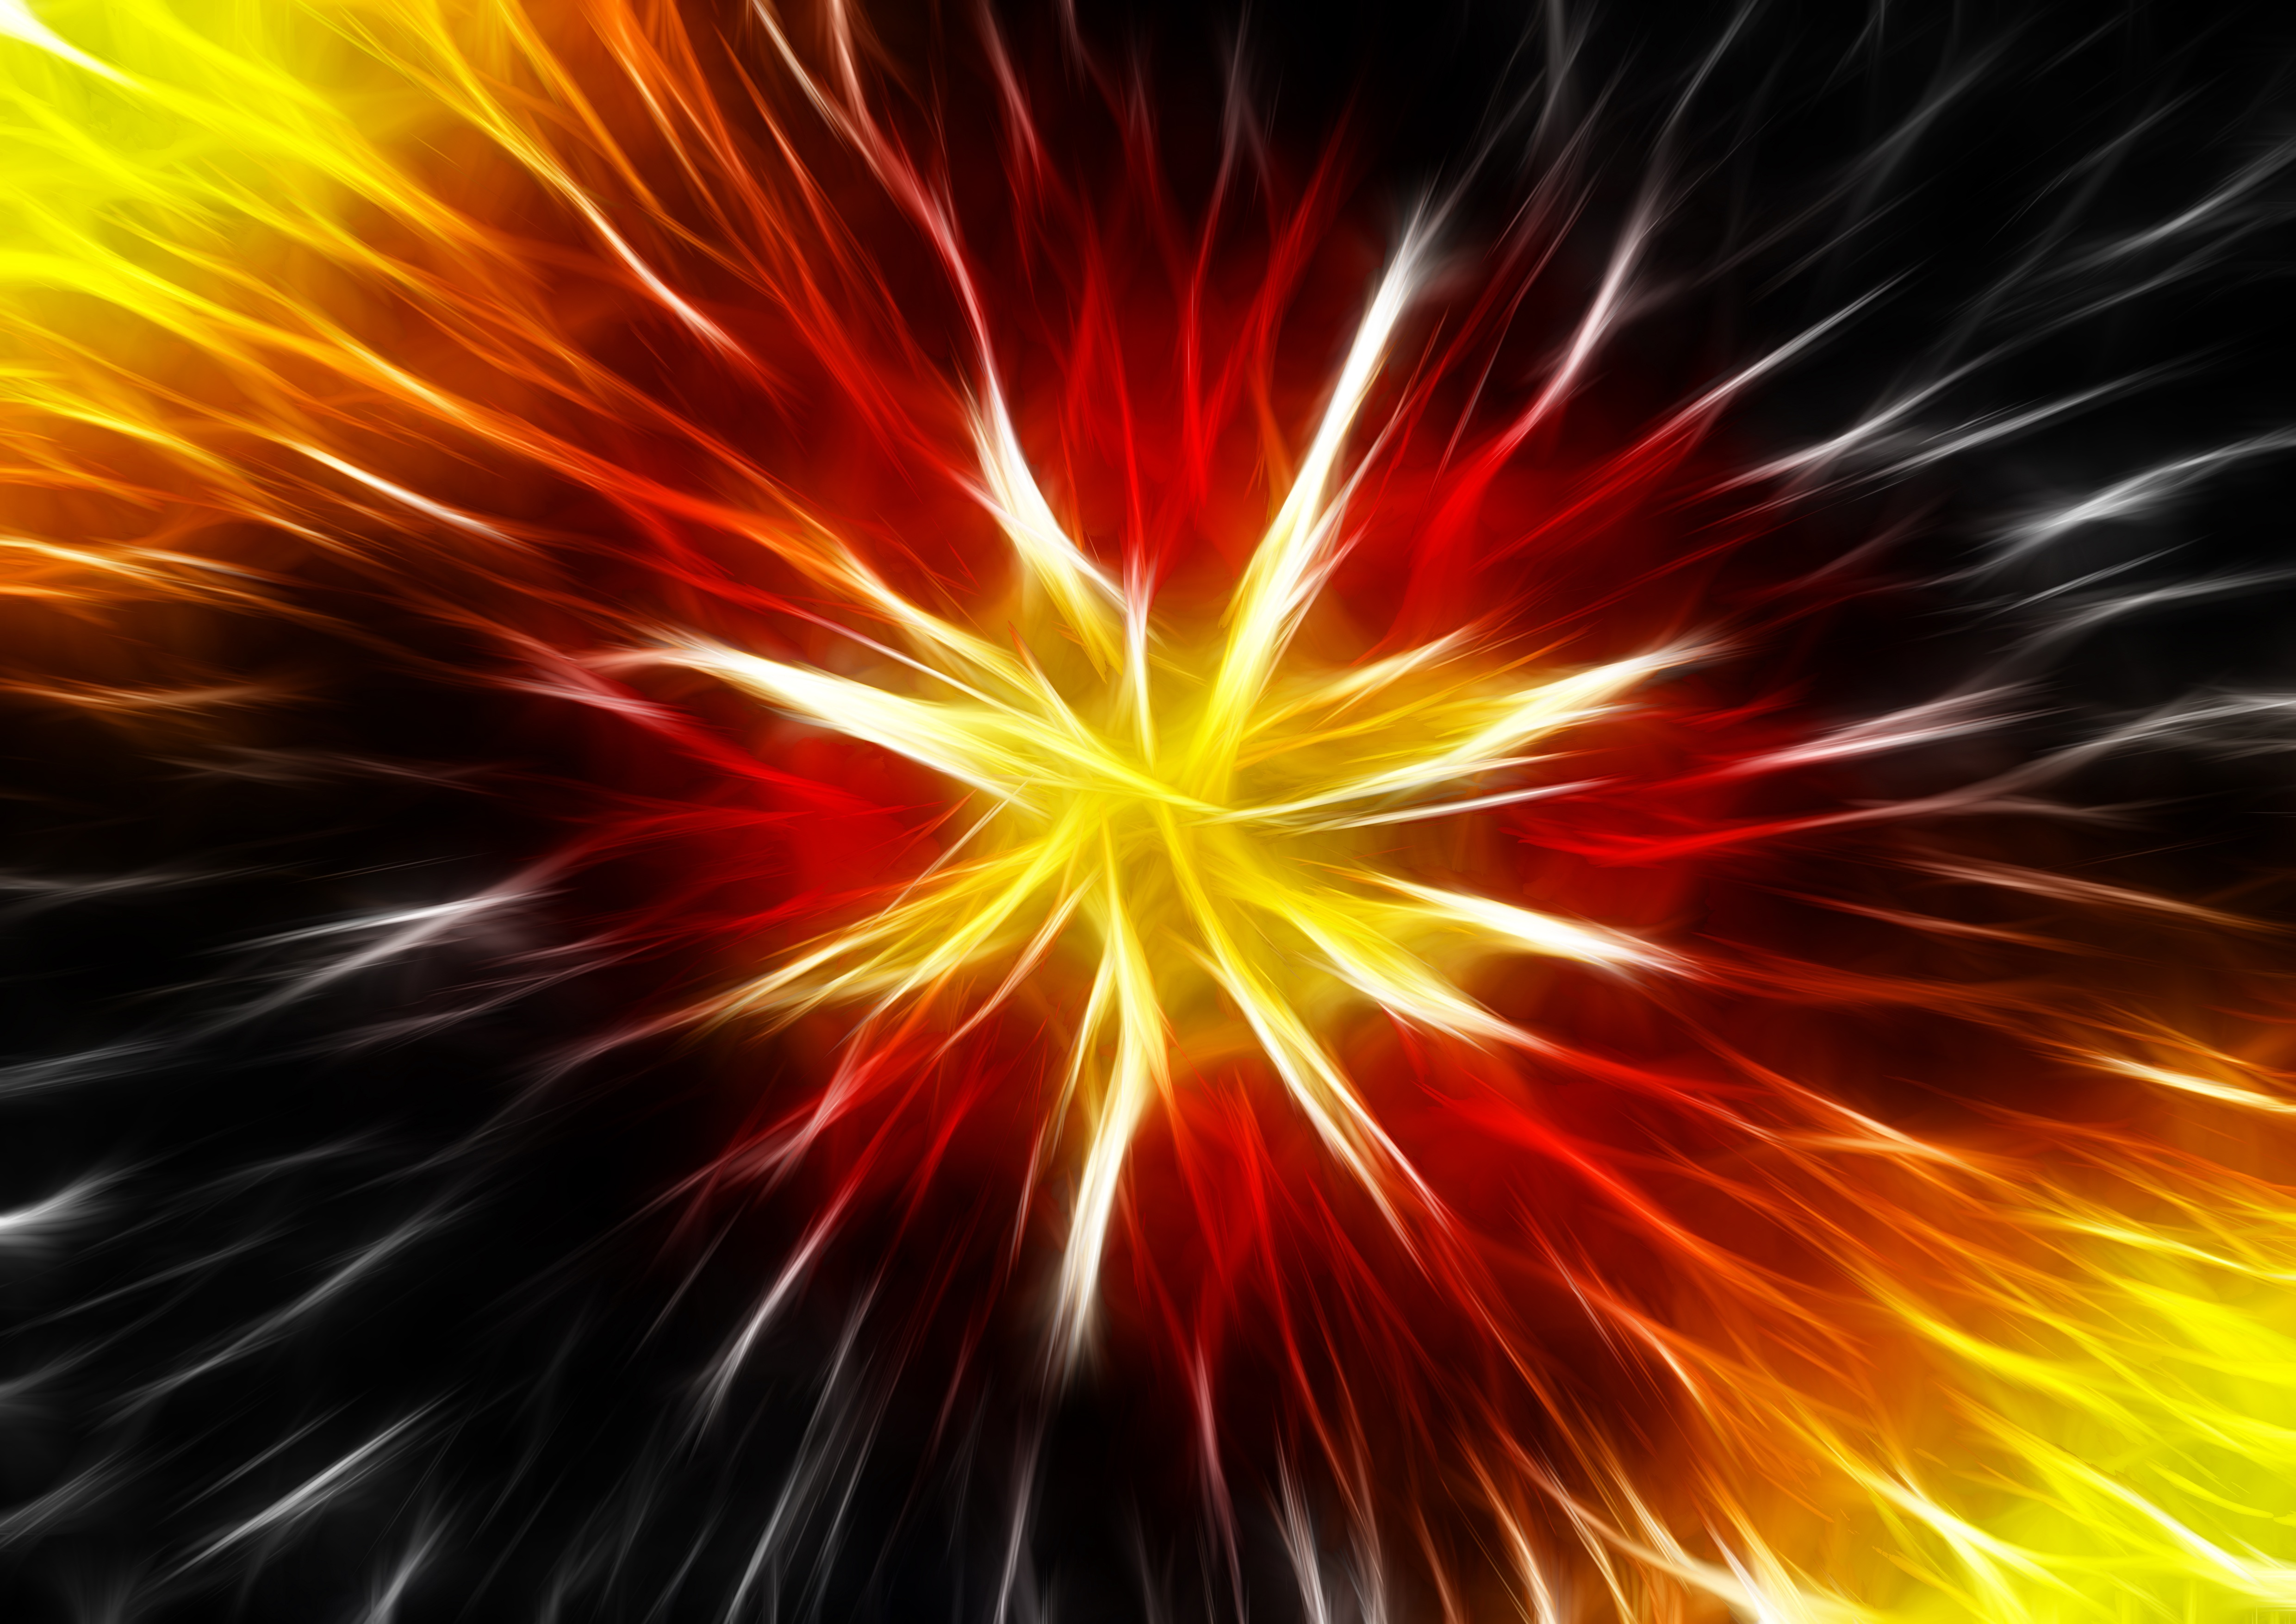 Abstract Star Explosion Wallpaper Free Download